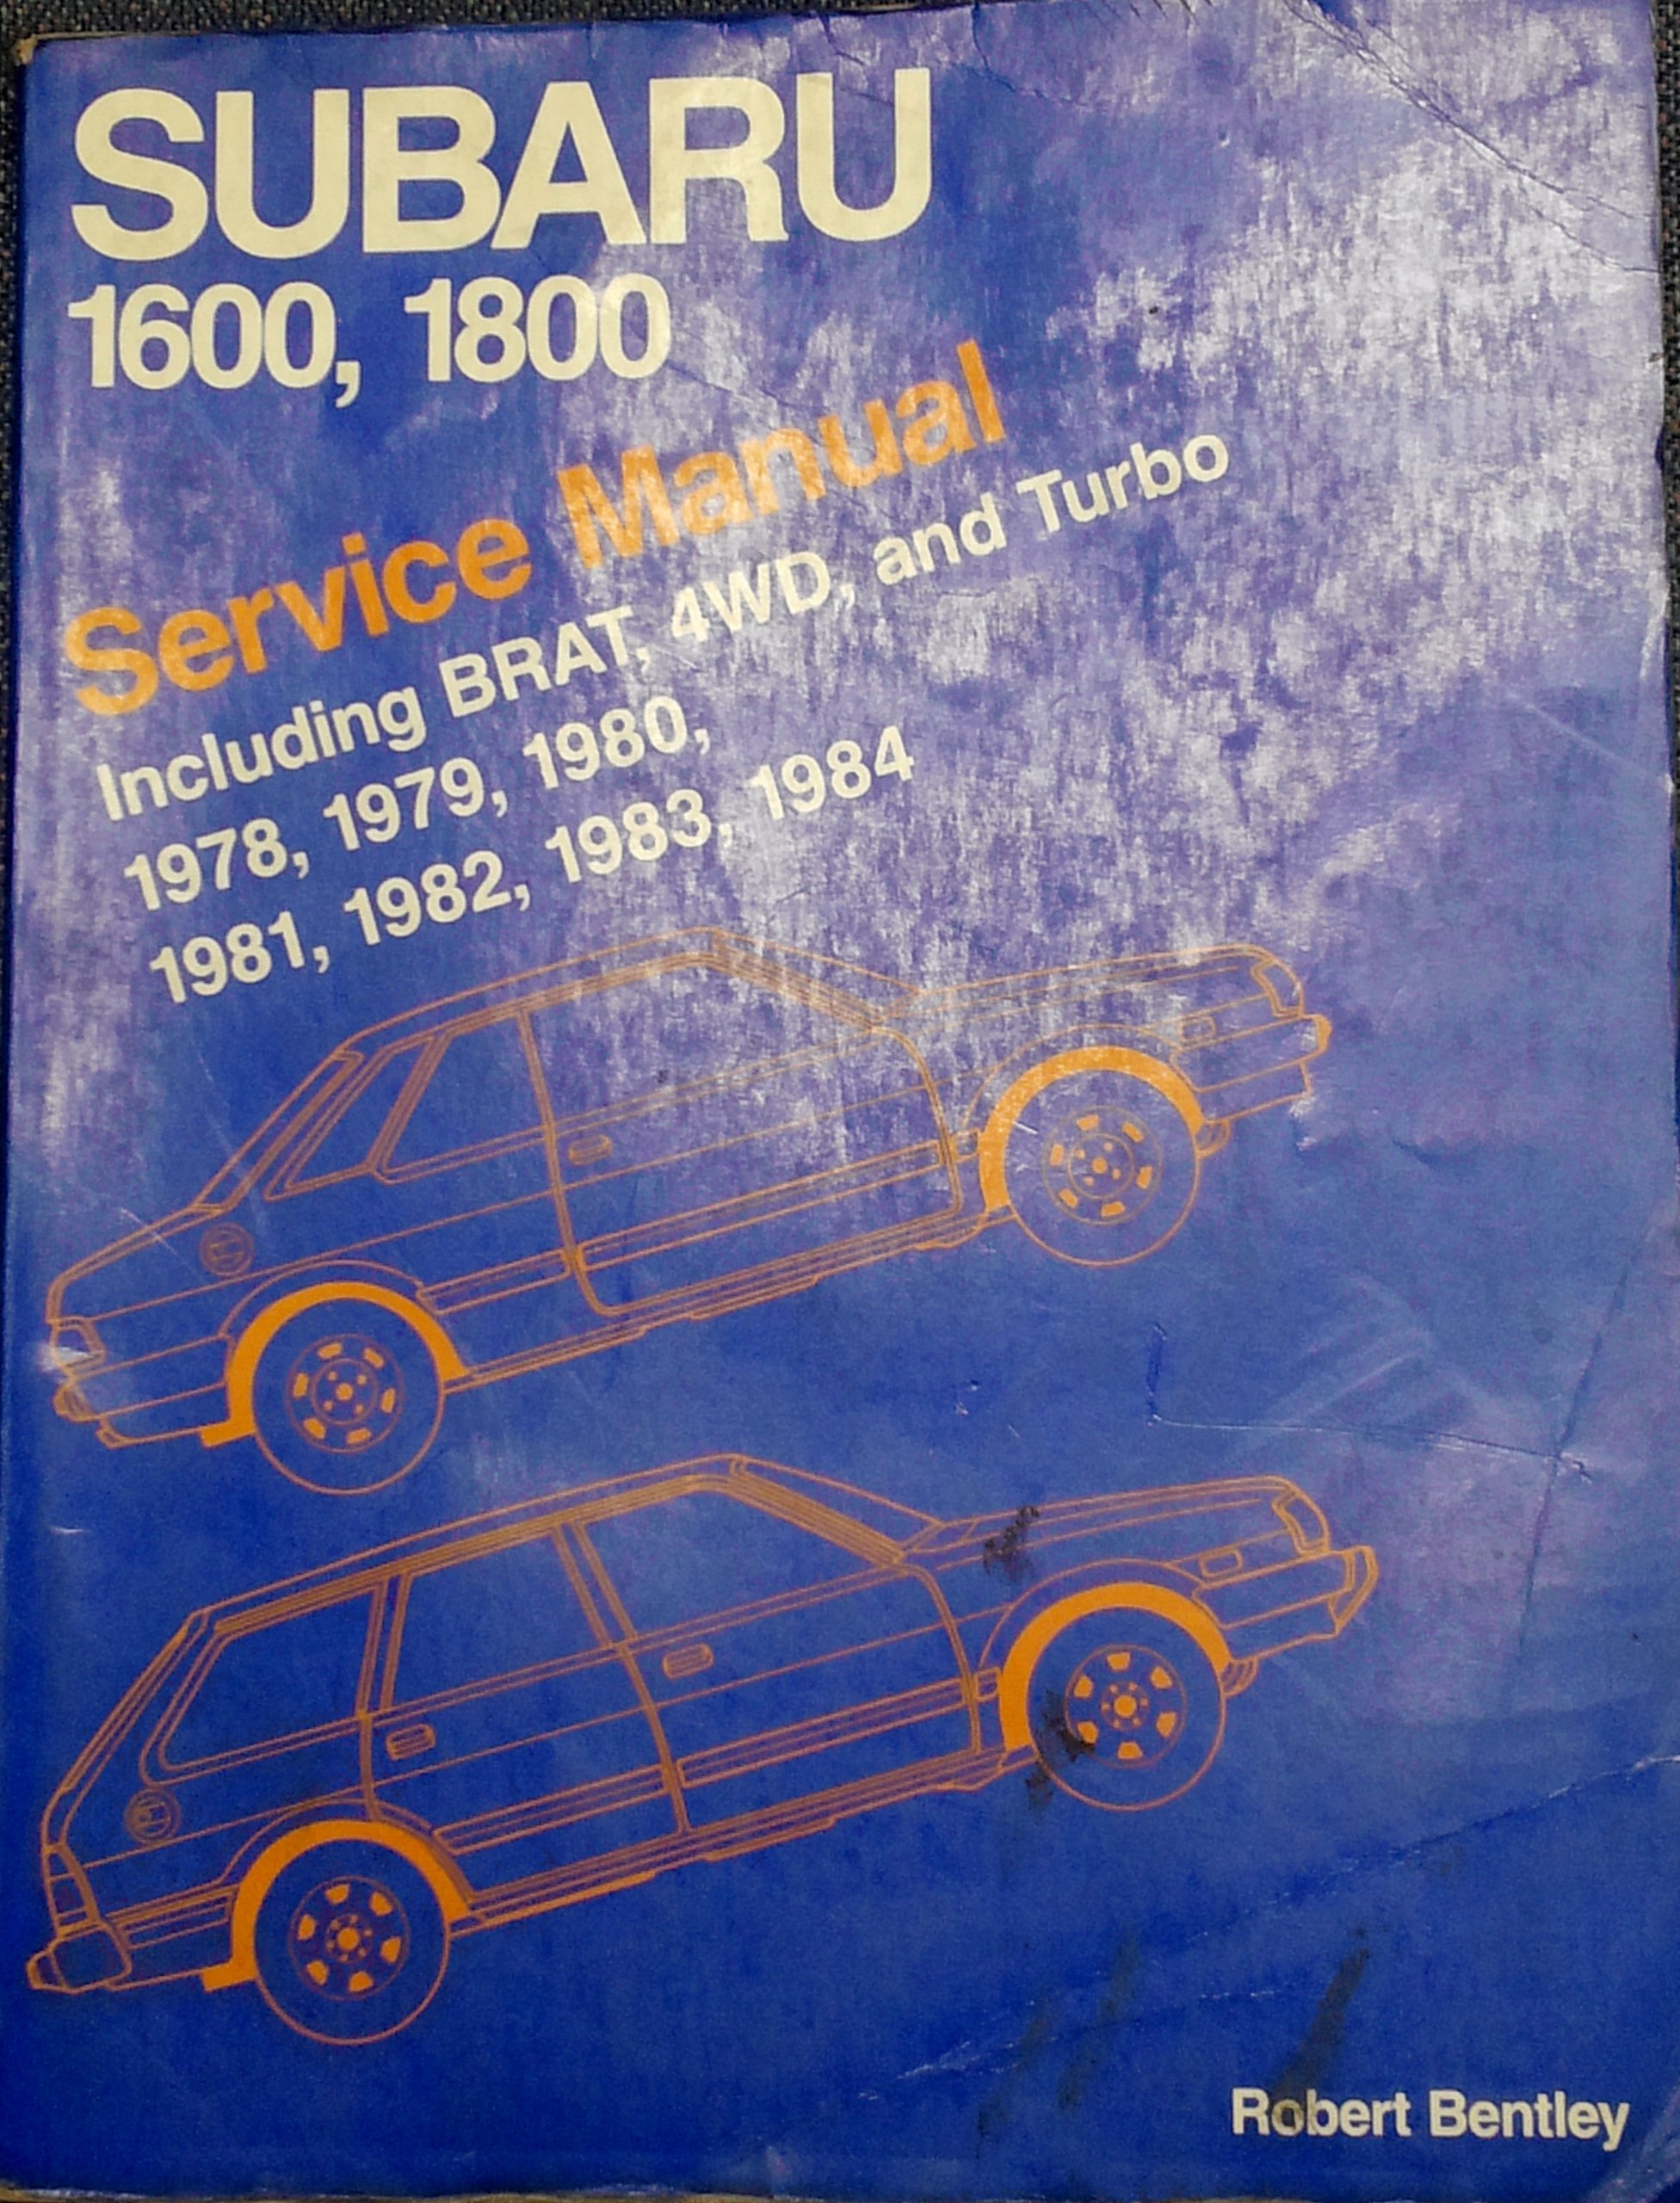 Subaru Brat Service Manual Baja Turbo Wiring Schematic 1600 1800 Including 4wd And 1978 Rh Amazon Com Brumby Pdf